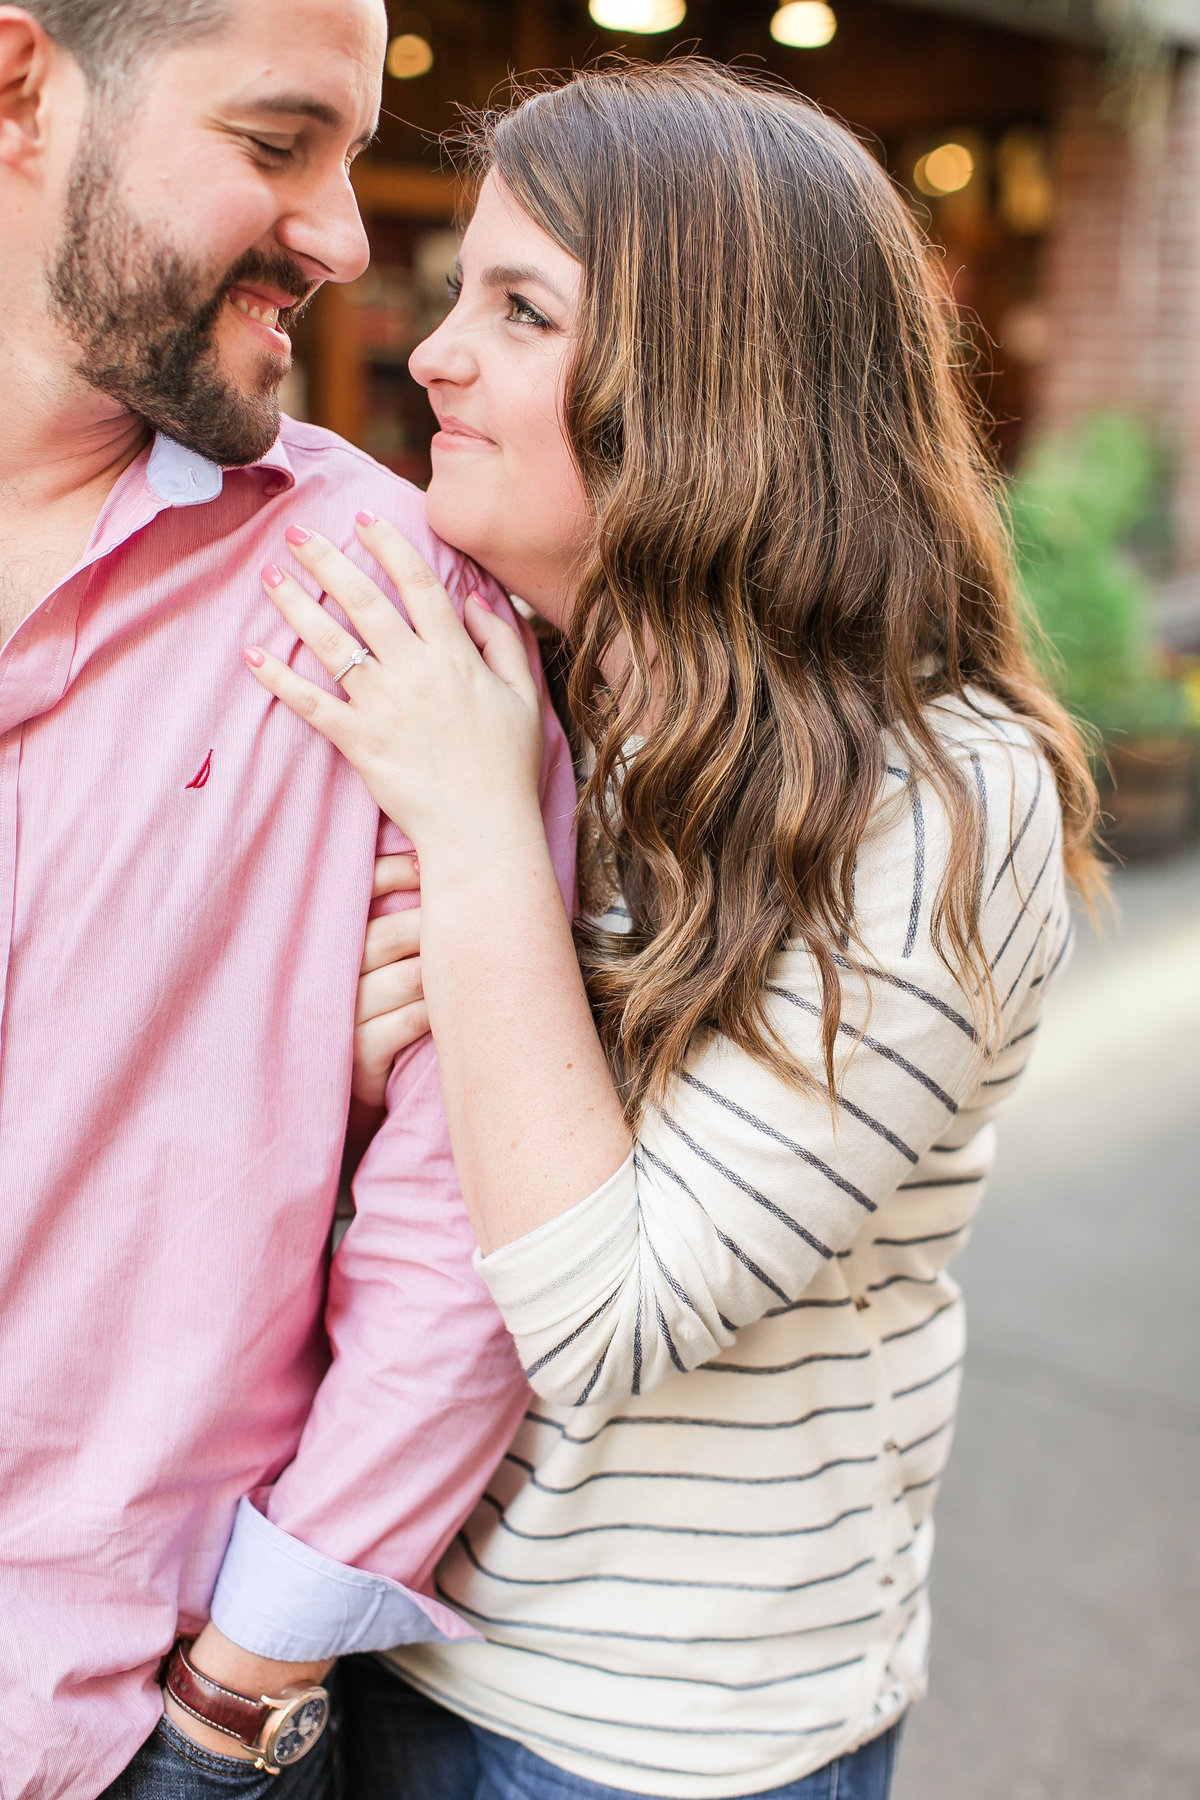 engagement-photo-favorites132351